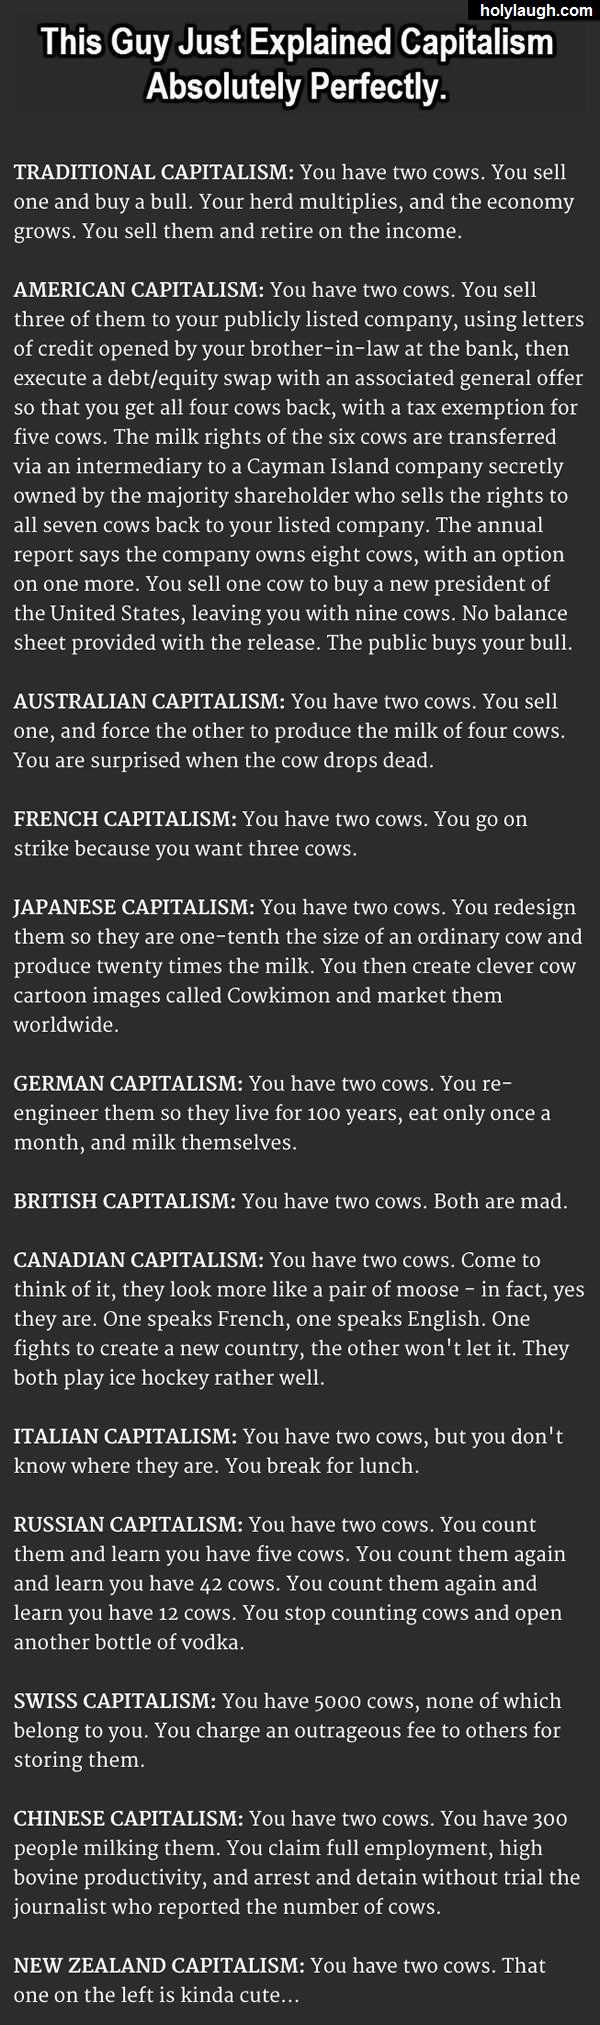 Capitalism Explained